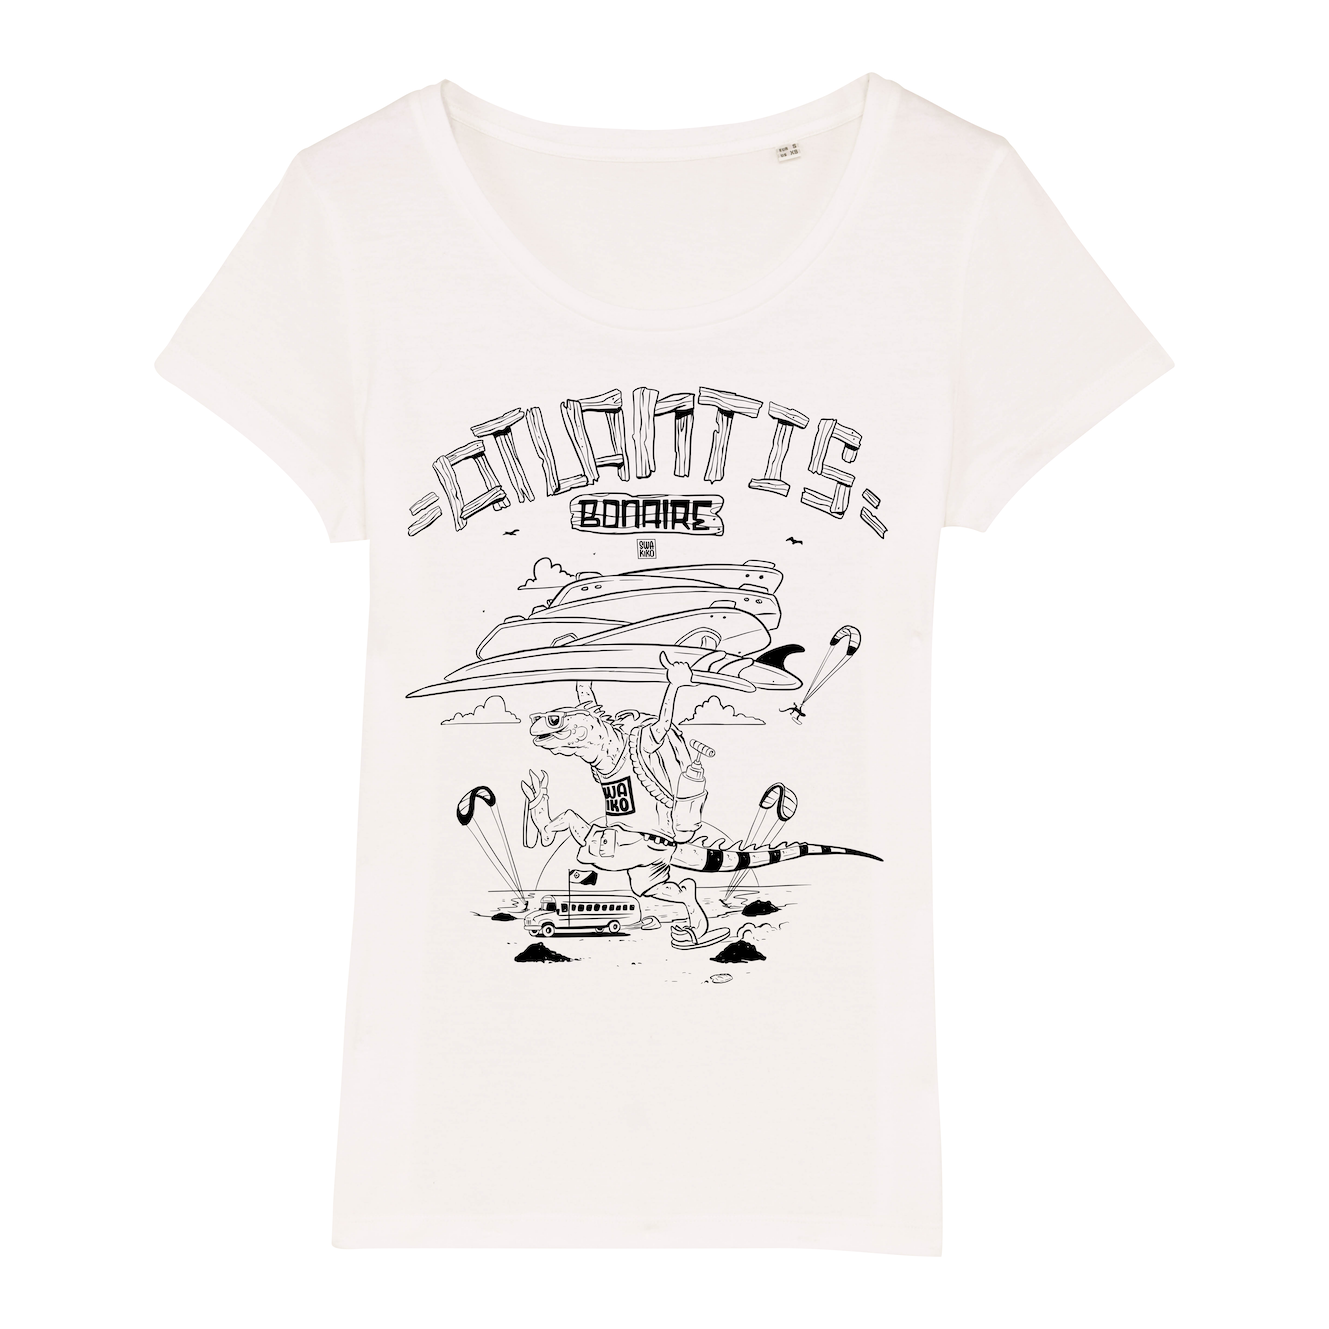 Atlantis Kitebeach T-shirt women white